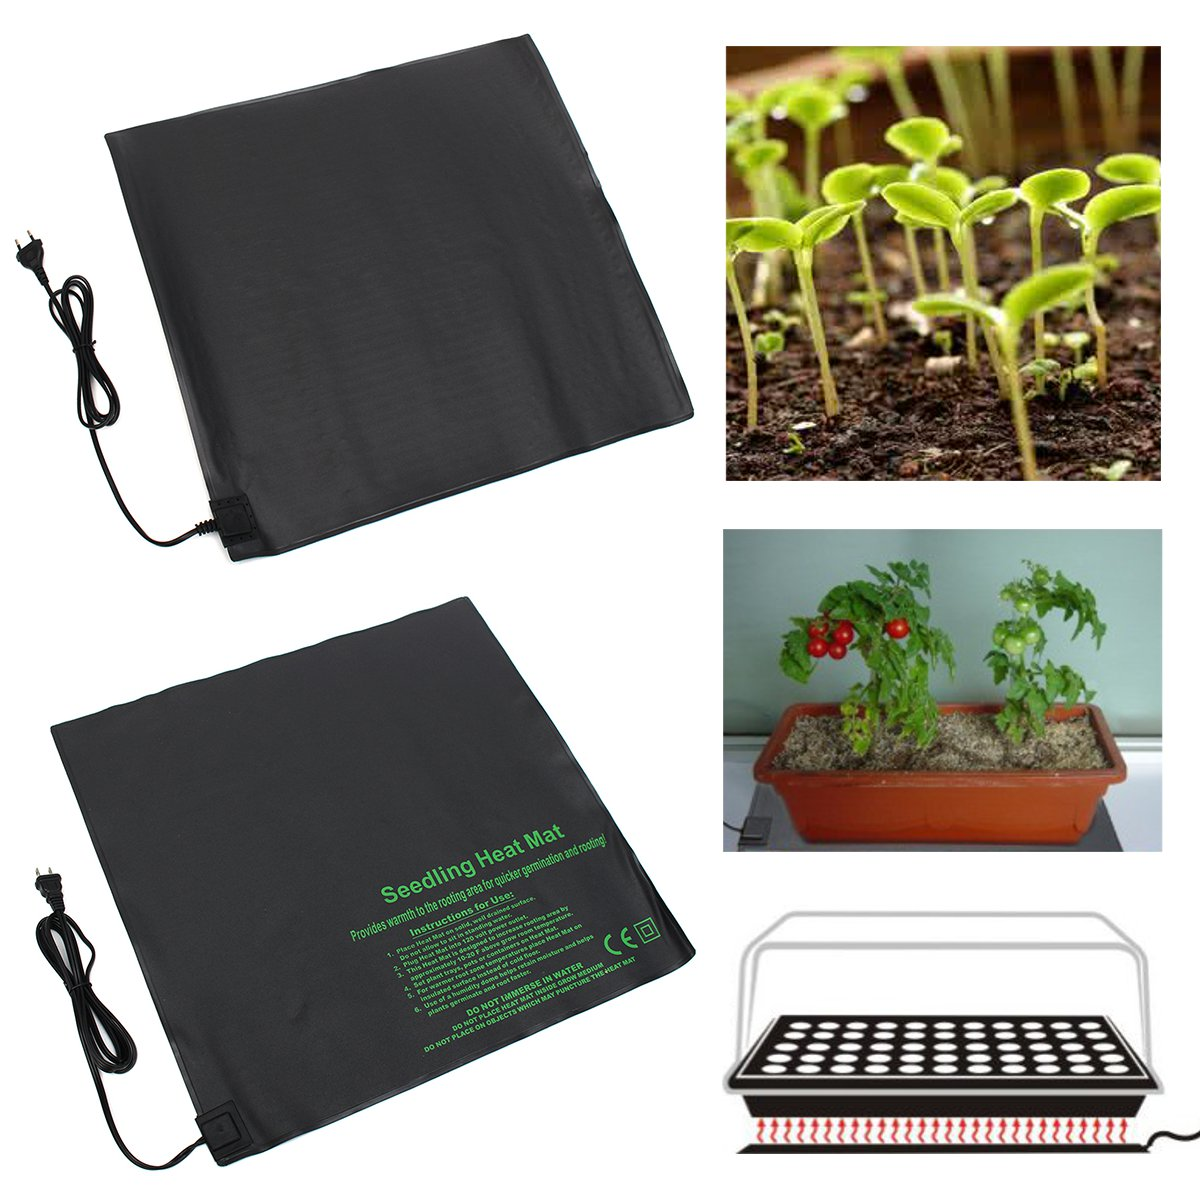 45W Seedling Heating Mat Waterproof Plant Seed Germination Propagation Clone Starter Pad Heat Mat Garden Supplies 52x52cm